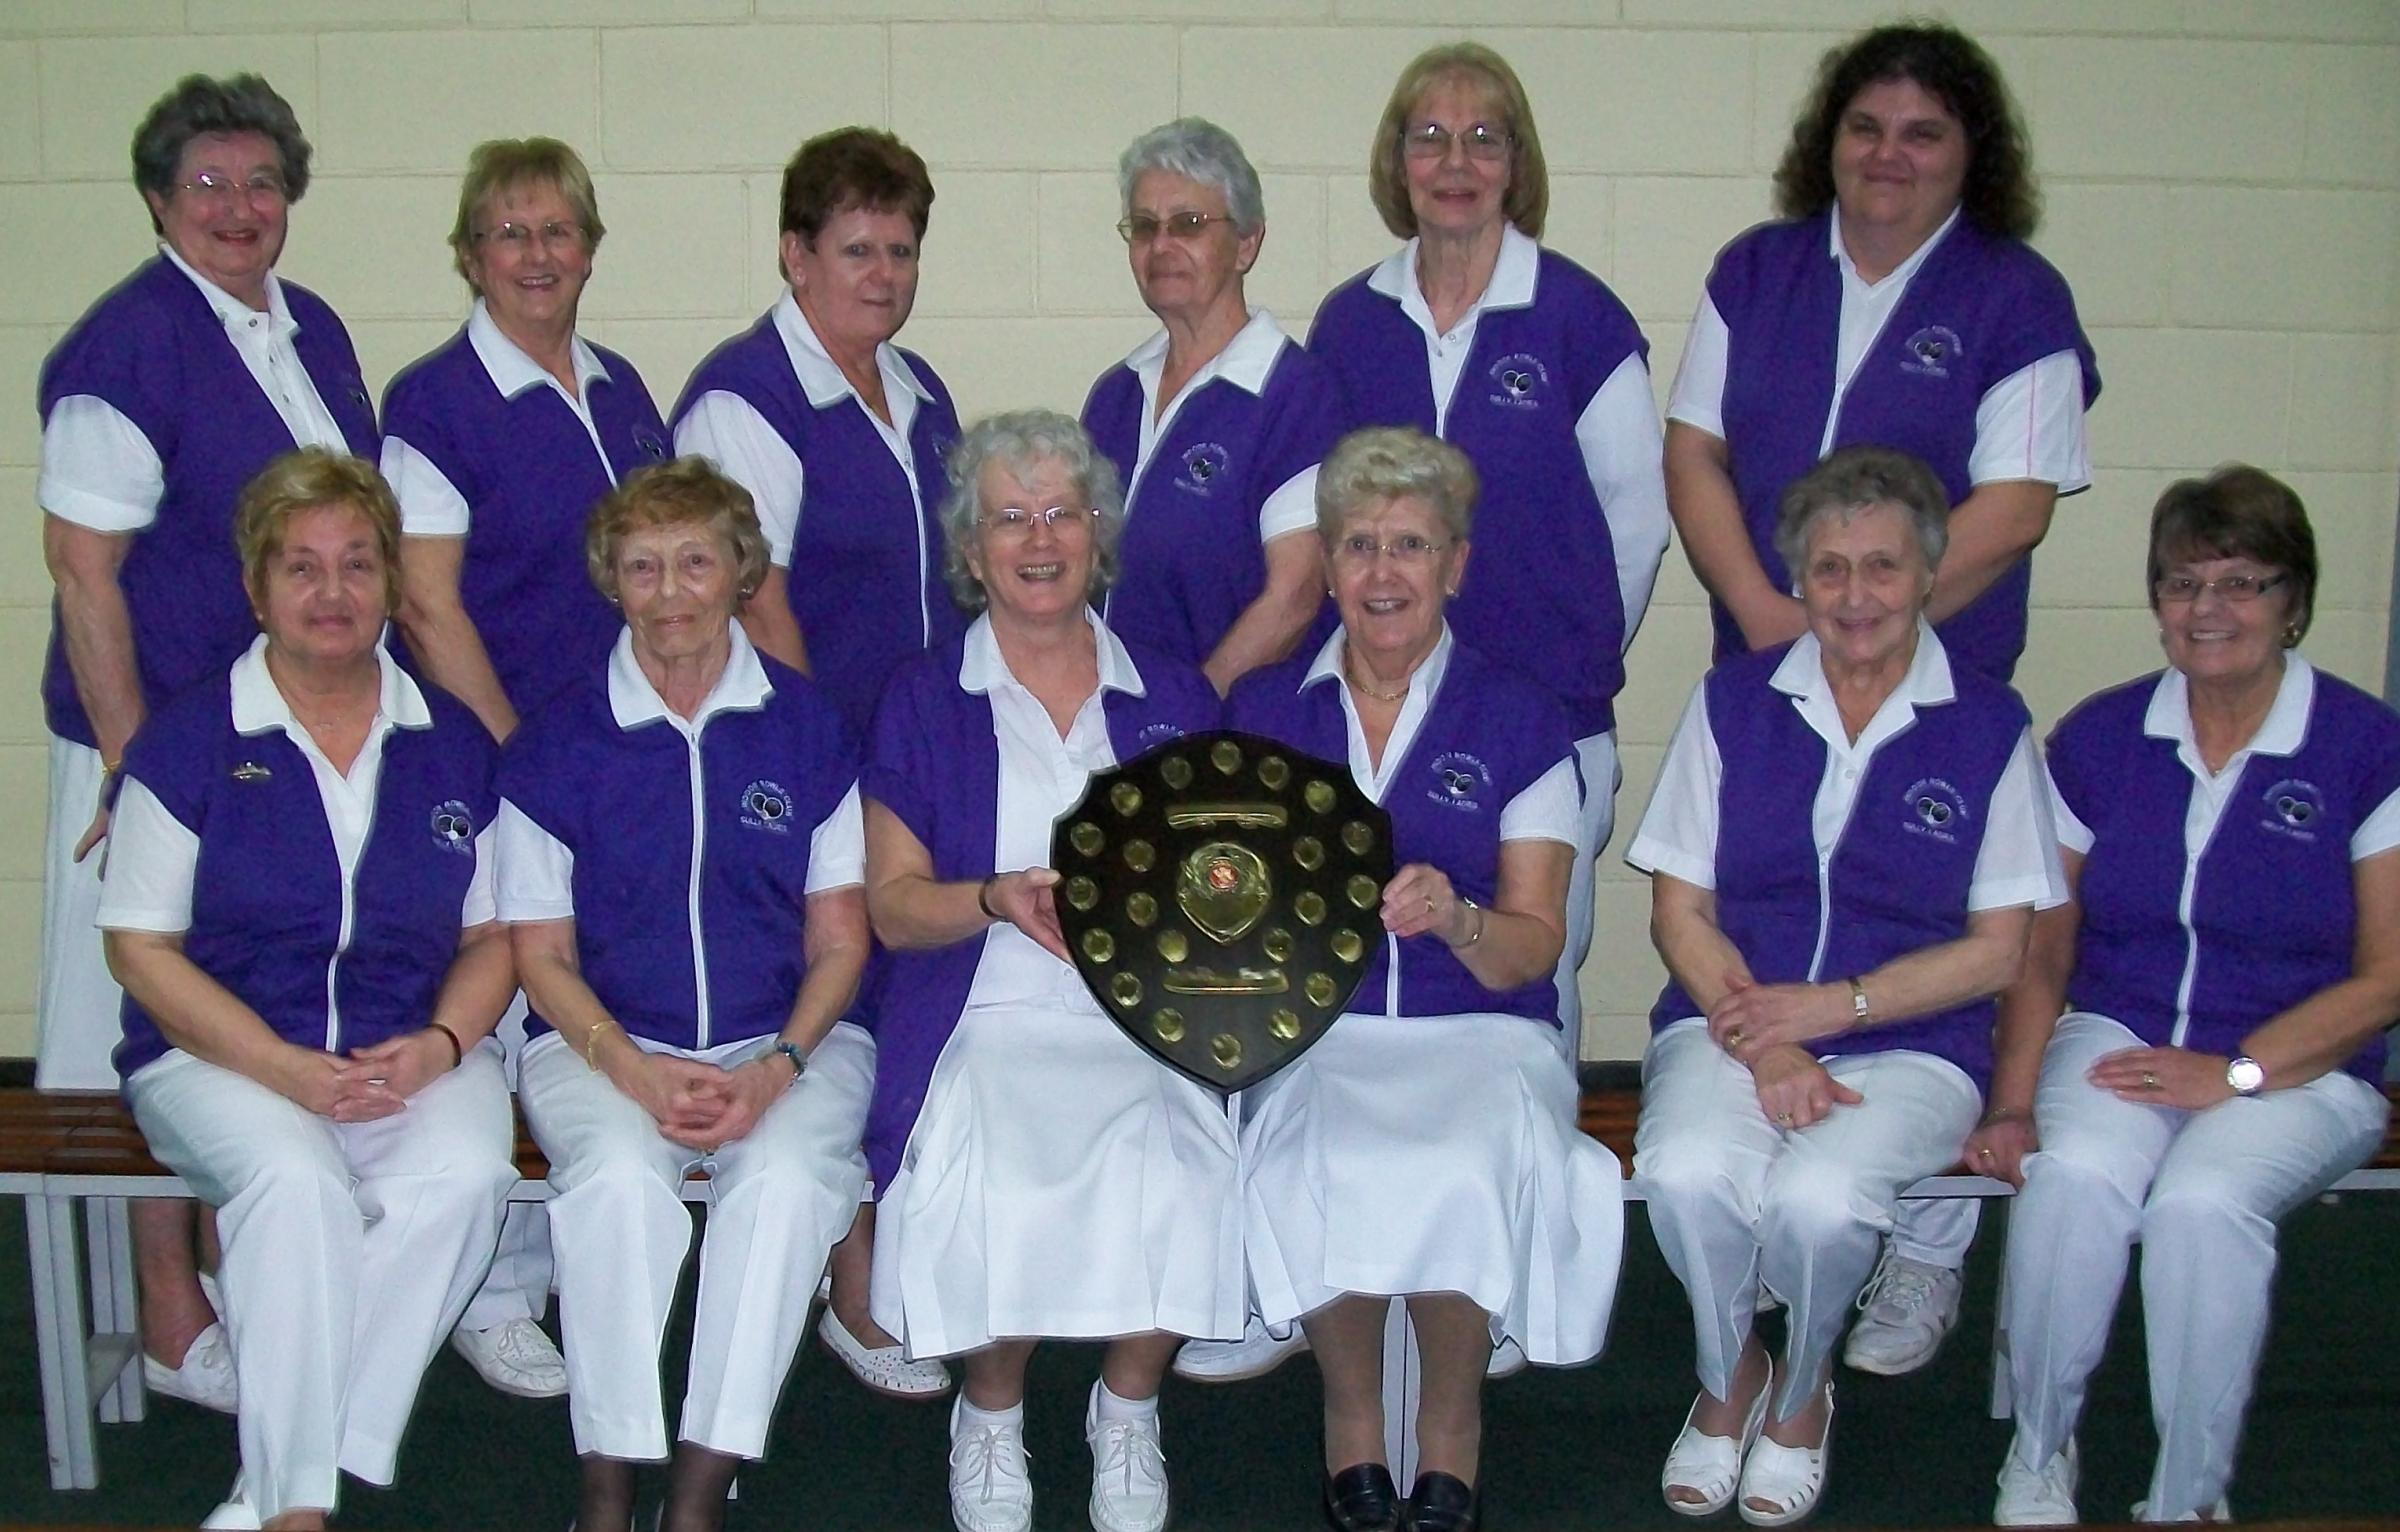 CHAMPIONSHIP SUCCESS: Ladies from the Sully Indoor Bowls Club with the D J Radford Championship League Shield - back row, from left: Barbara Stanton, Beryl Holmes, Linda Woodcock, Pat Cogbill, Pat Holsworthy and Bethan Horgan. Front: June Be